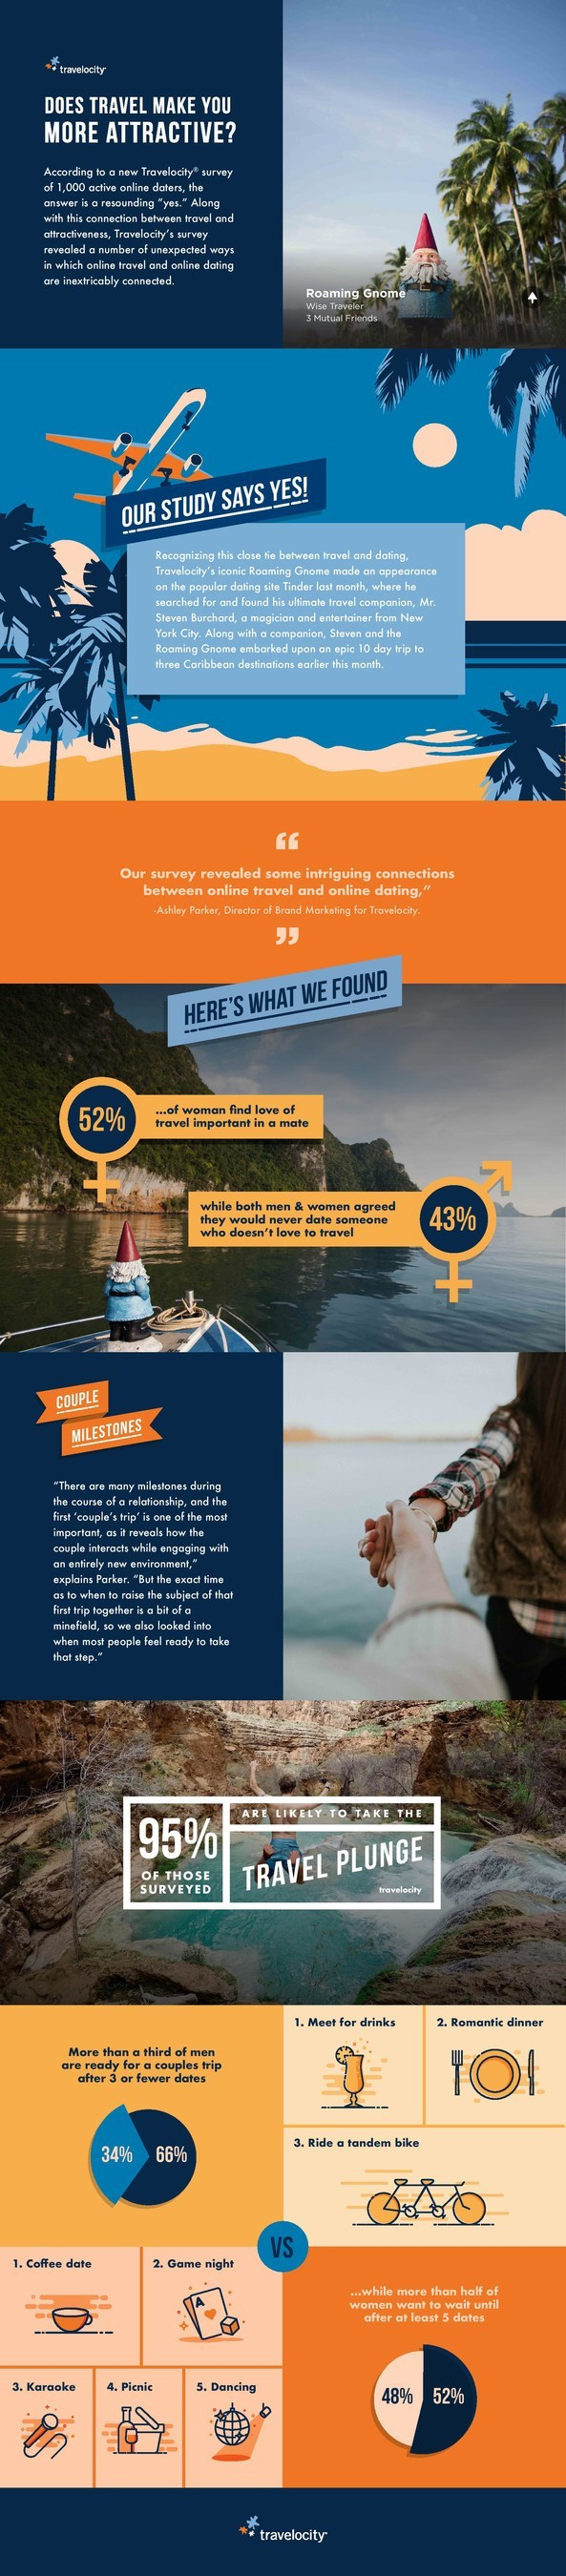 Does travel make you more attractive?